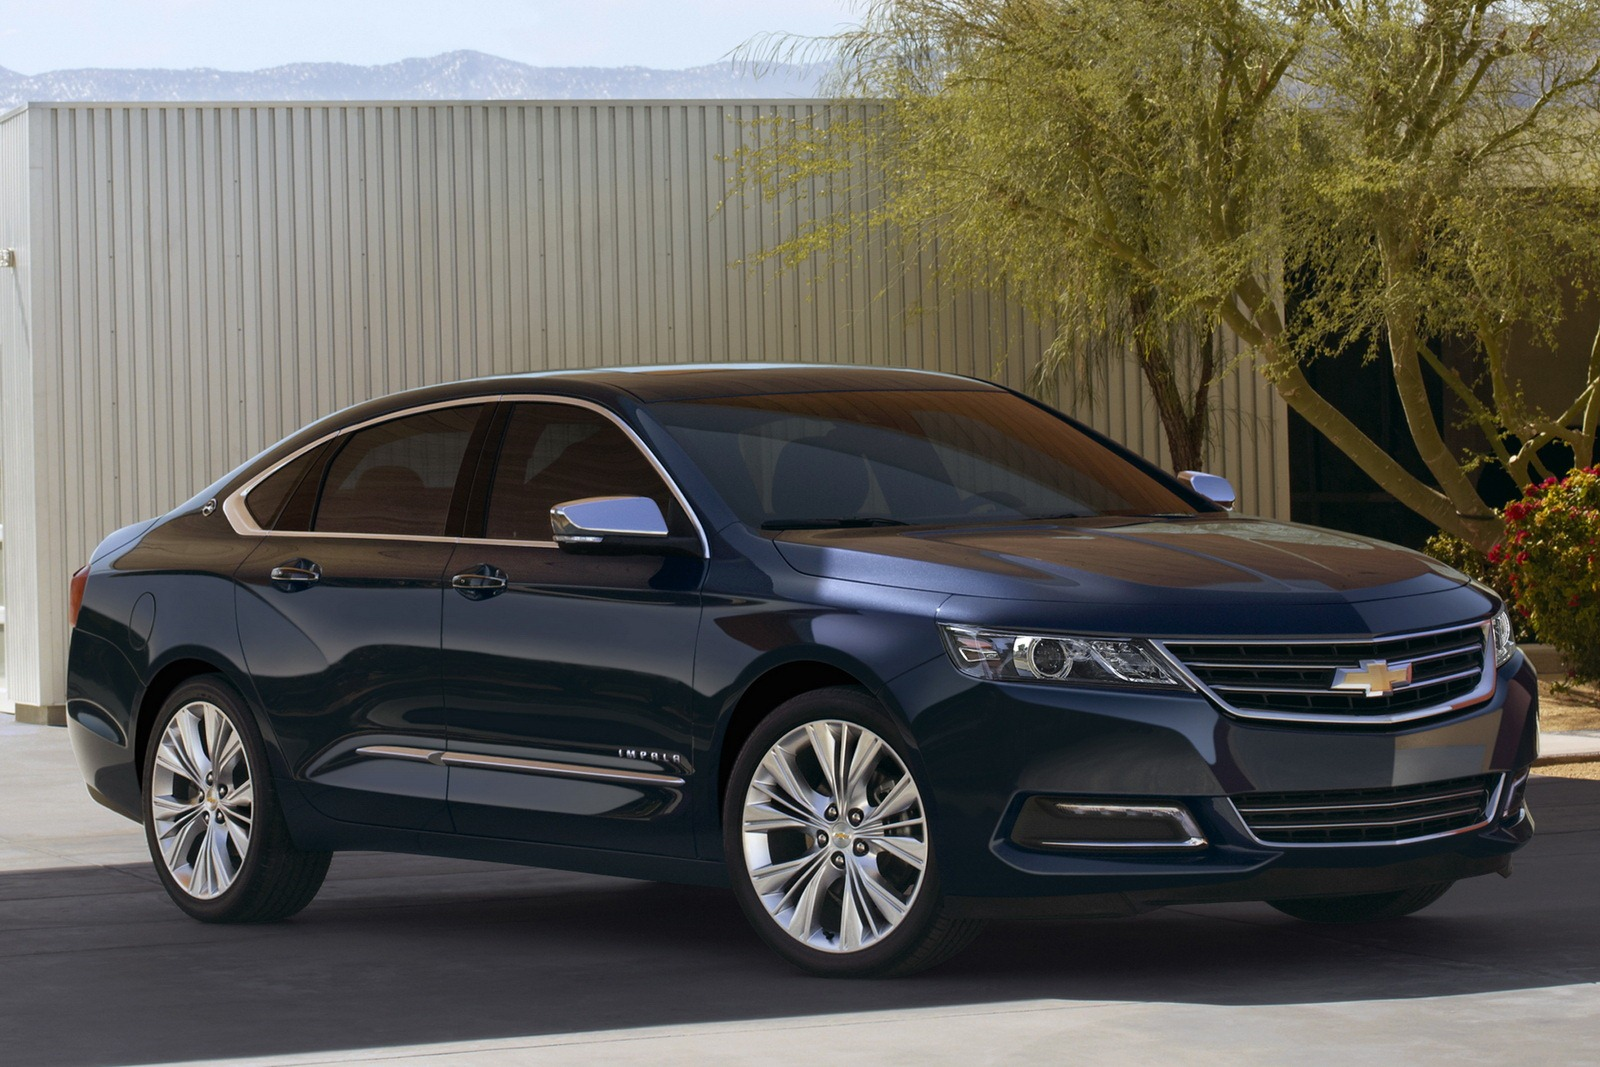 hight resolution of the 2014 chevrolet impala